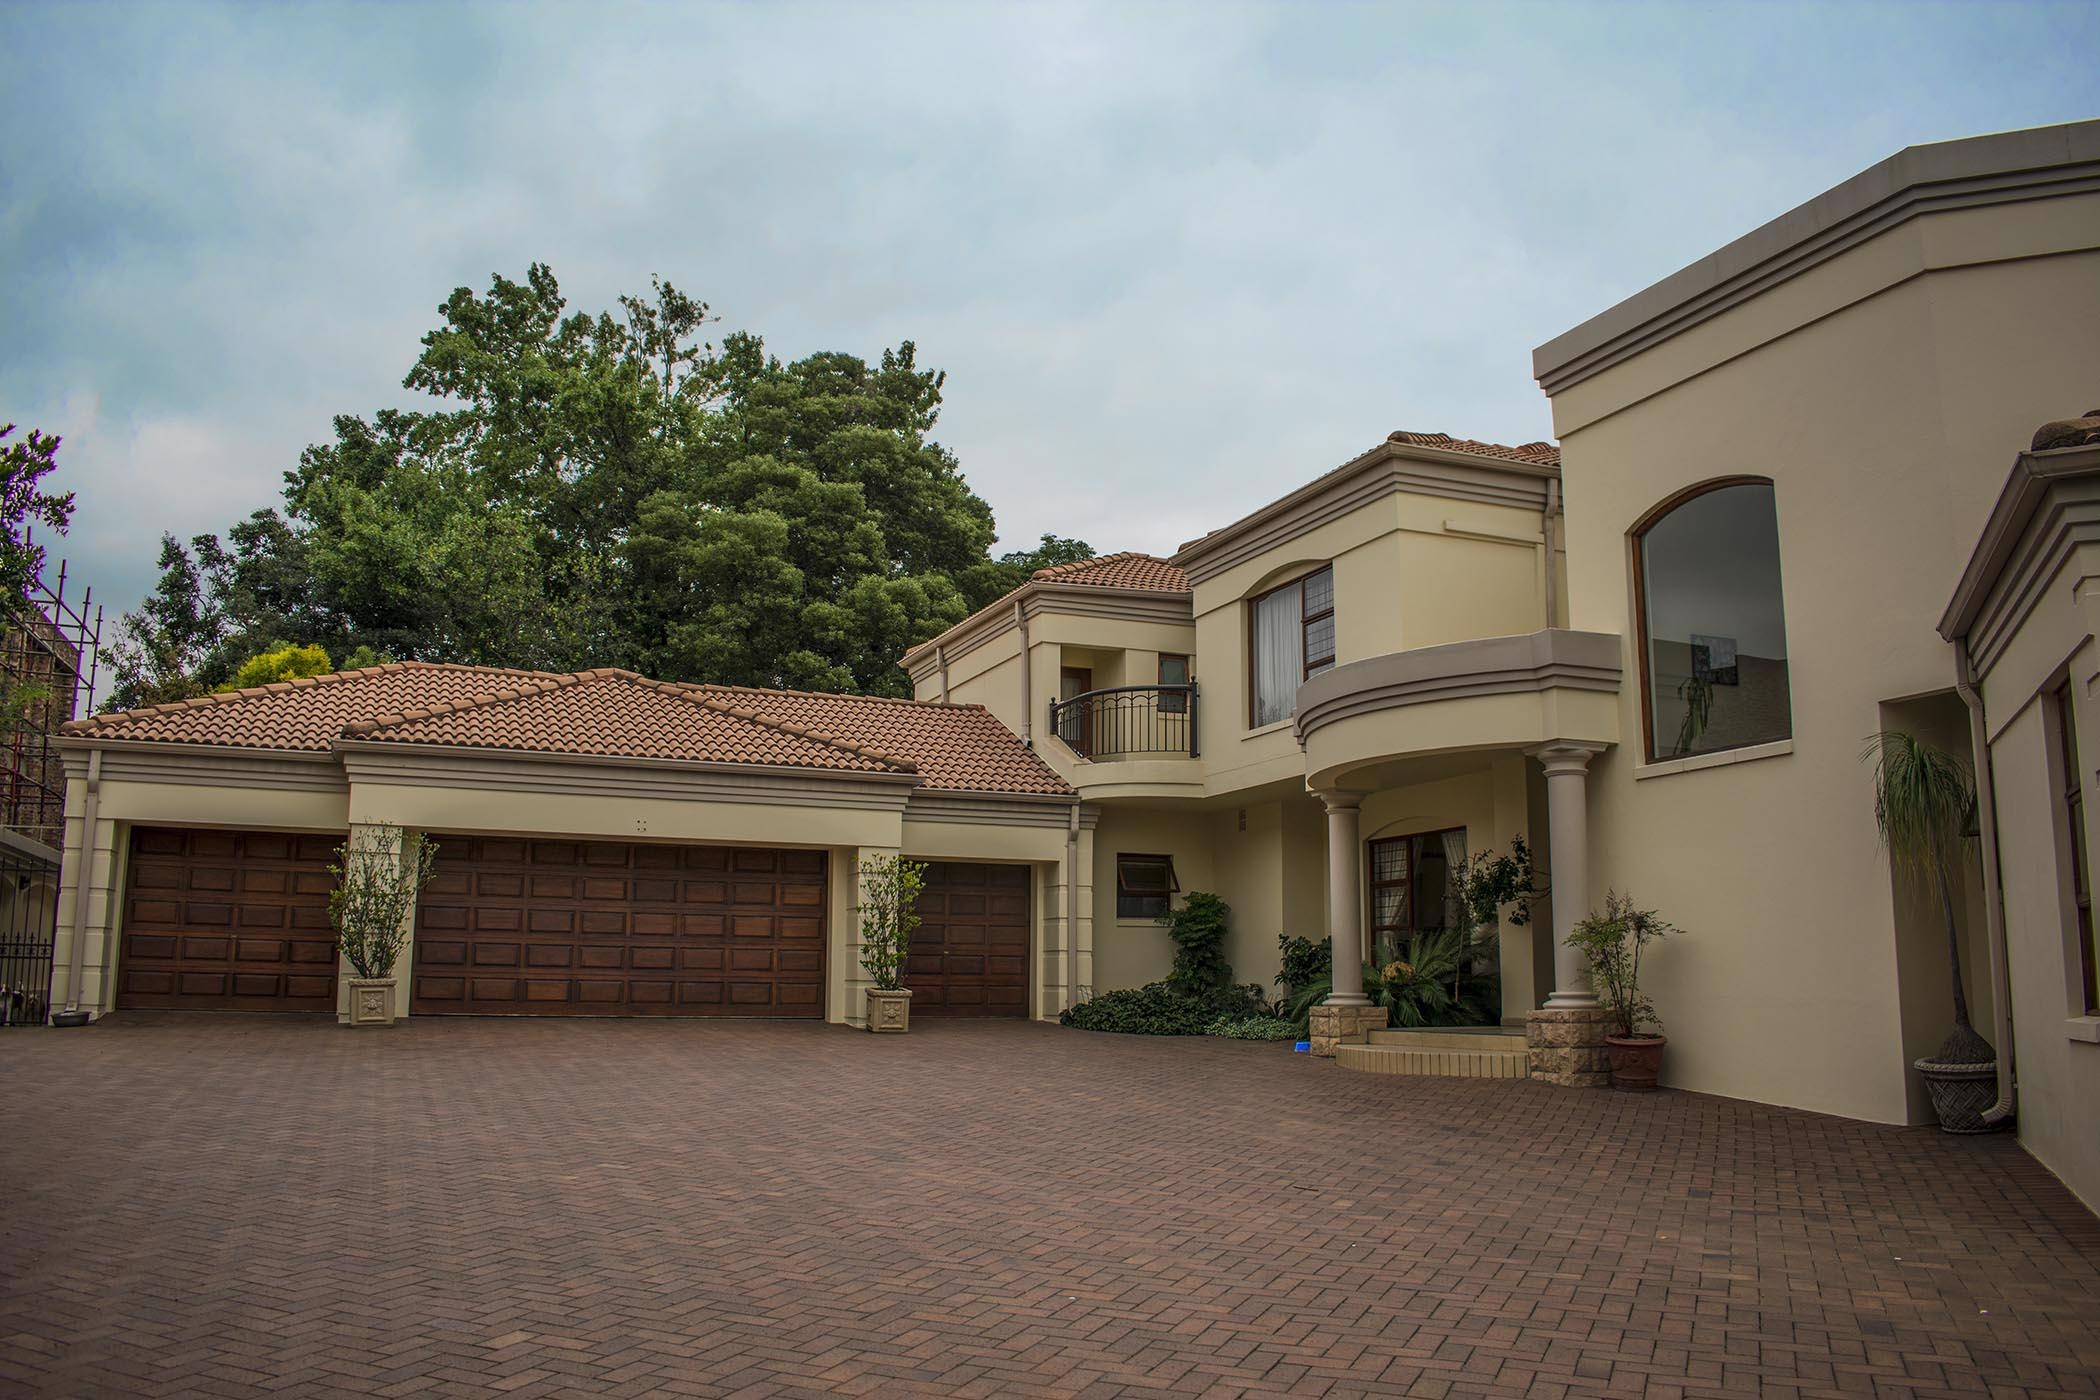 https://listing.pamgolding.co.za/images/properties/201905/1333324/H/1333324_H_38.jpg